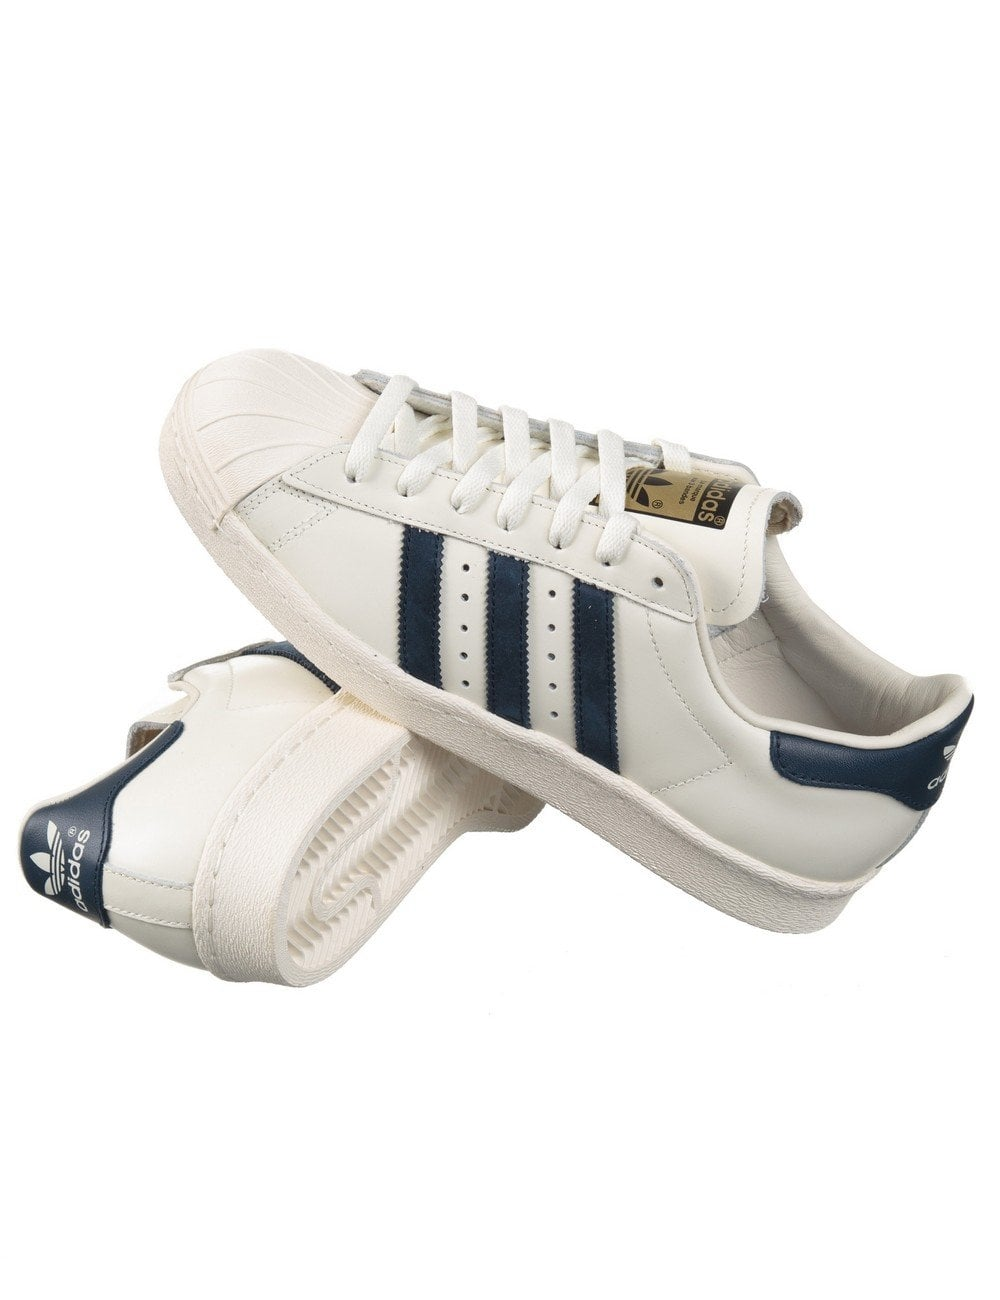 promo code 1899d 2b3e5 ... closeout superstar 80s delux shoes vintage white navy ce34d ec040